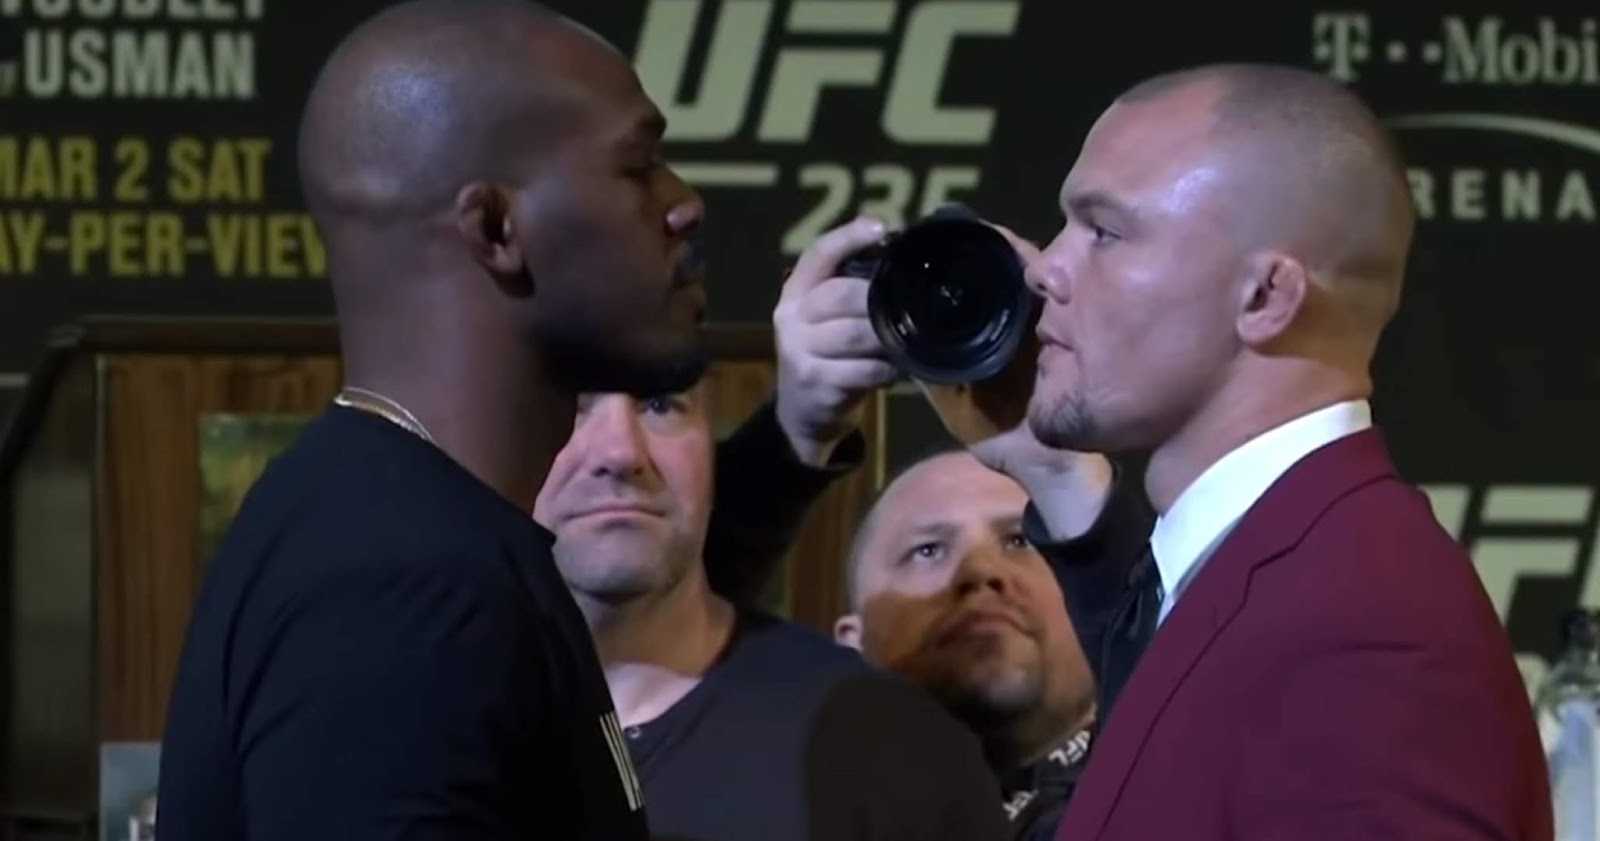 JON JONES VS. ANTHONY SMITH 2